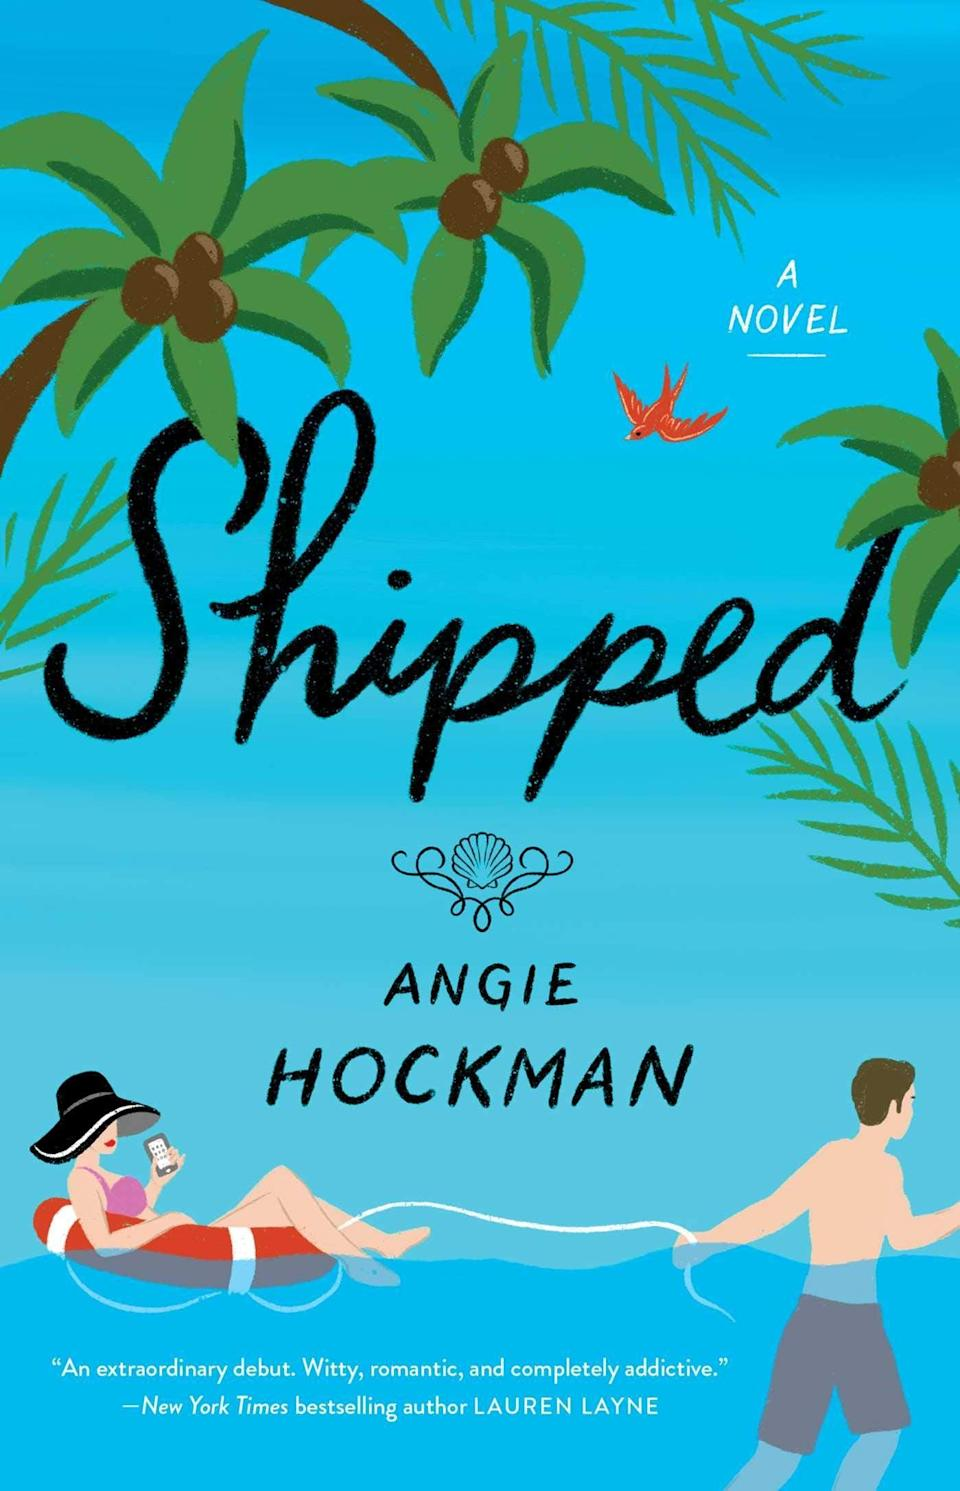 <p><span><strong>Shipped</strong> by Angie Hockman</span> ($14) is a literal escape to the Galápagos Islands, where Henley, a marketing manager for a popular cruise line, must experience the cruise herself in order to draft a marketing proposal that will land her a promotion. Unfortunately, her work nemesis, social media manager Graeme, is also along for the ride - and up for the same promotion.</p> <p>If you liked <span><strong>The Unhoneymooners</strong> by Christina Lauren</span>, this book is very similar - both have an enemies-to-lovers storyline set in a tropical paradise. But I personally think <strong>Shipped</strong> would make for a better movie. For one, the characters spend more time away from home in this book, enjoying the beautiful sights of the Galápagos and learning about the islands's history. Plus, there's an evil boss who makes the perfect movie villain. Overall, it's a sweet story with lovable characters.</p>